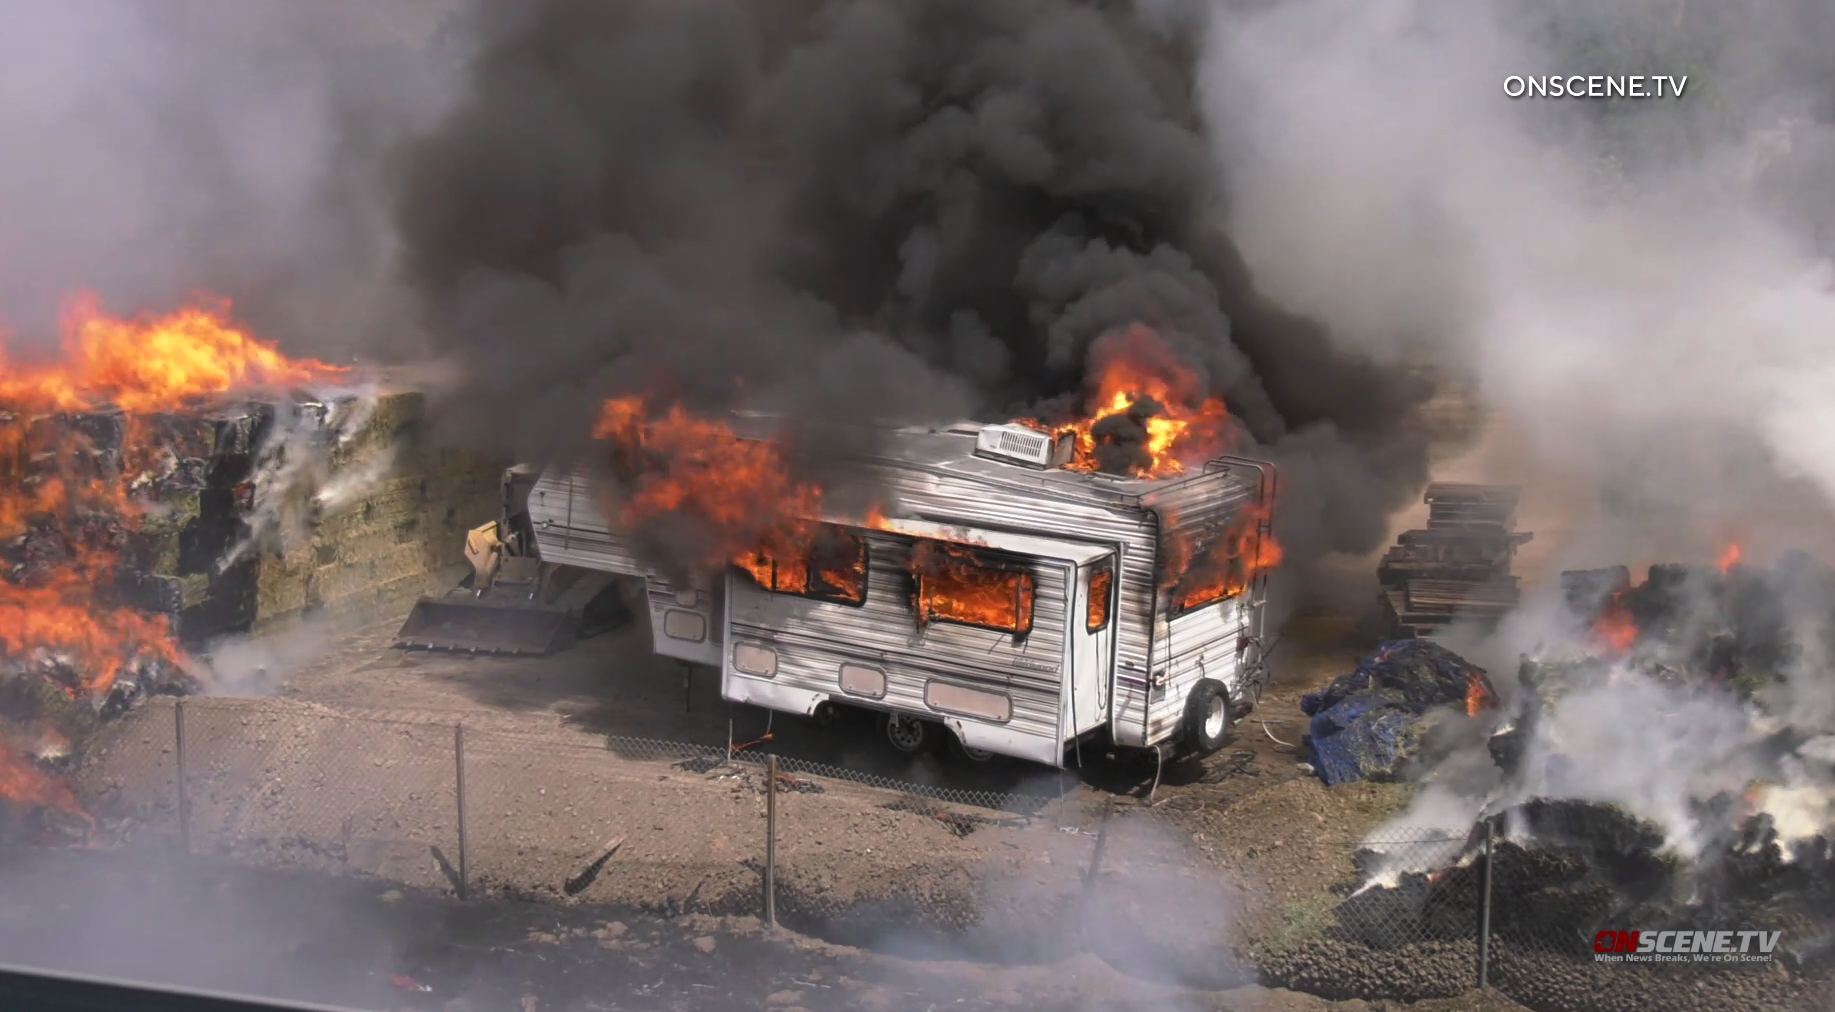 An RV burns in a fire along the 210 Freeway in Pacoima on Sep. 14, 2019. (Credit: Onscene.TV)